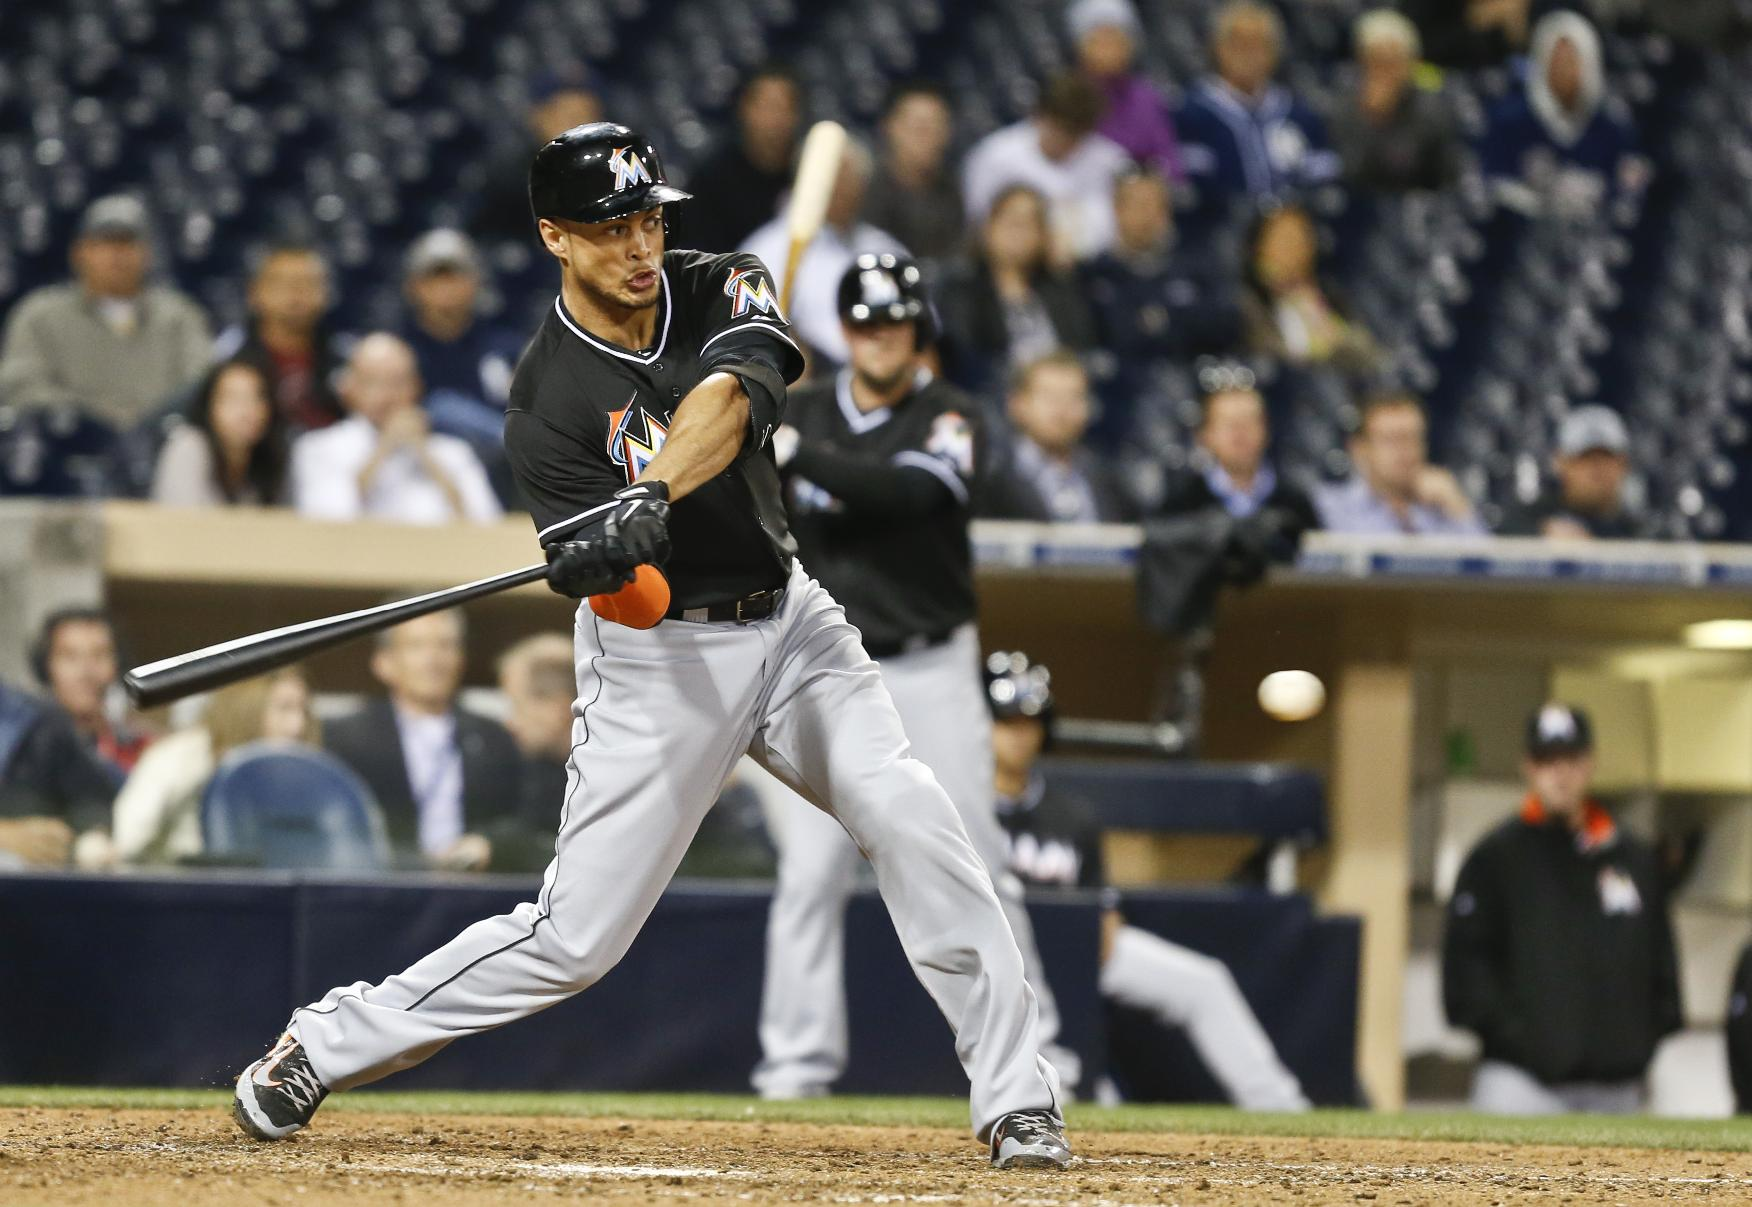 Stanton's HR lifts Marlins over Padres 3-1 in 11